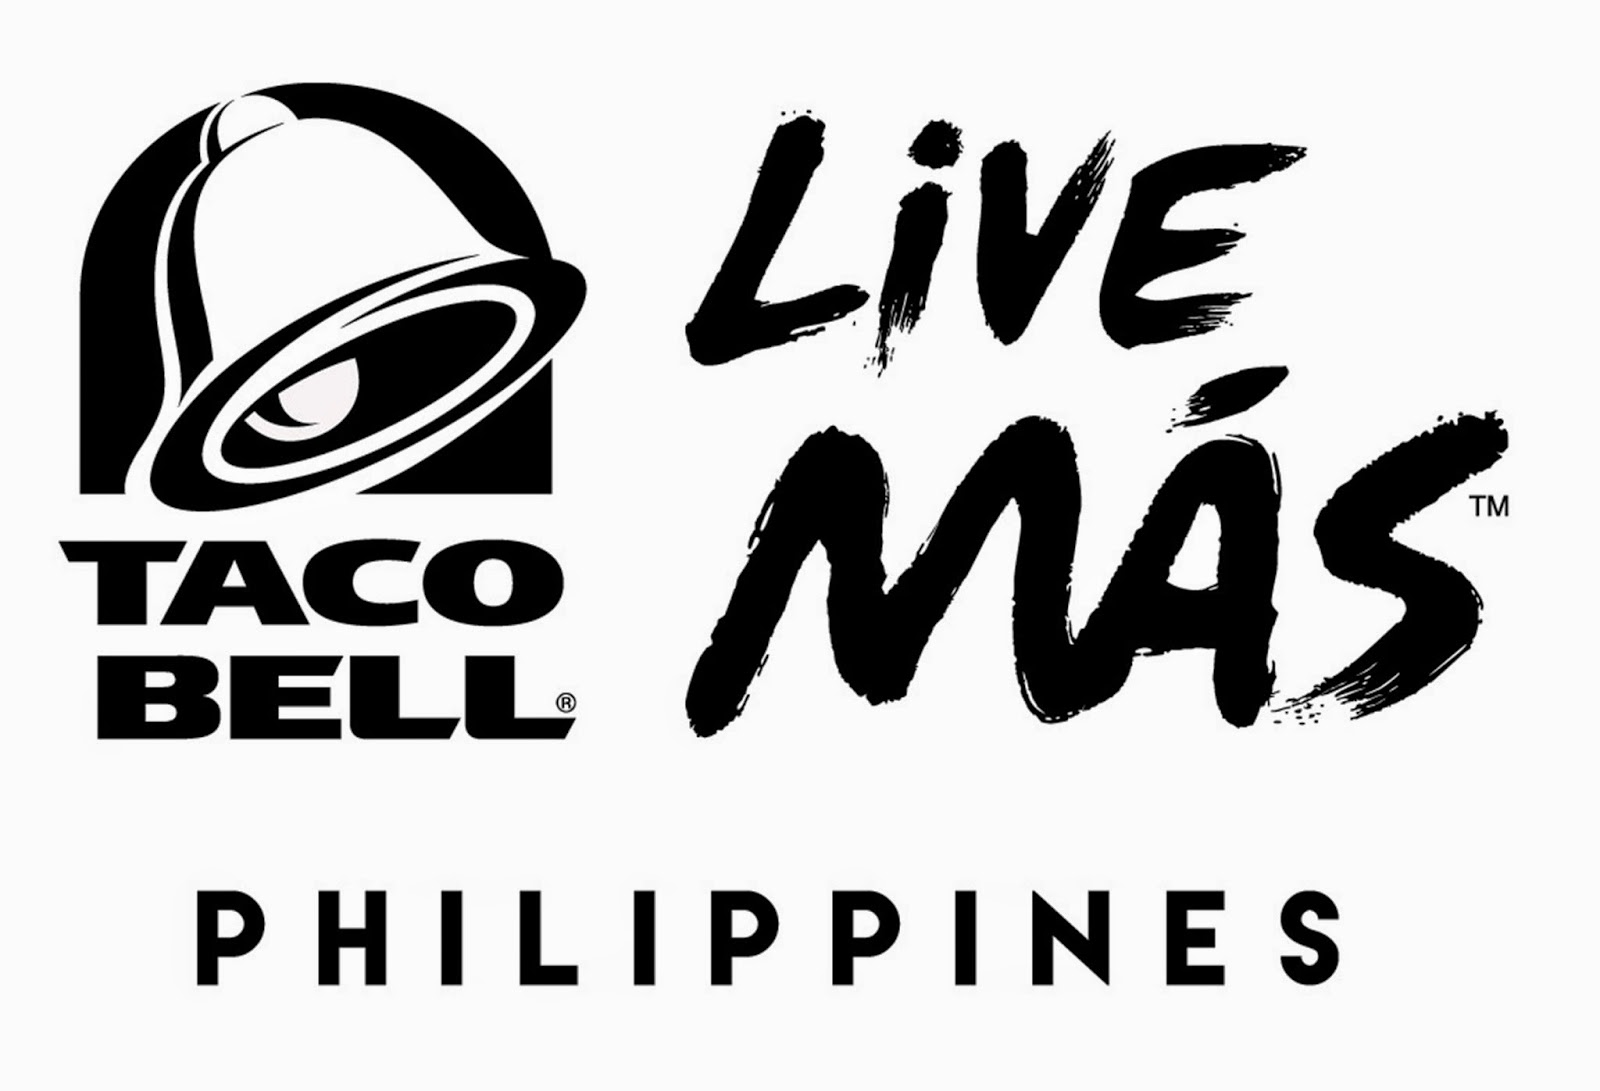 The All New Taco Bell Philippines